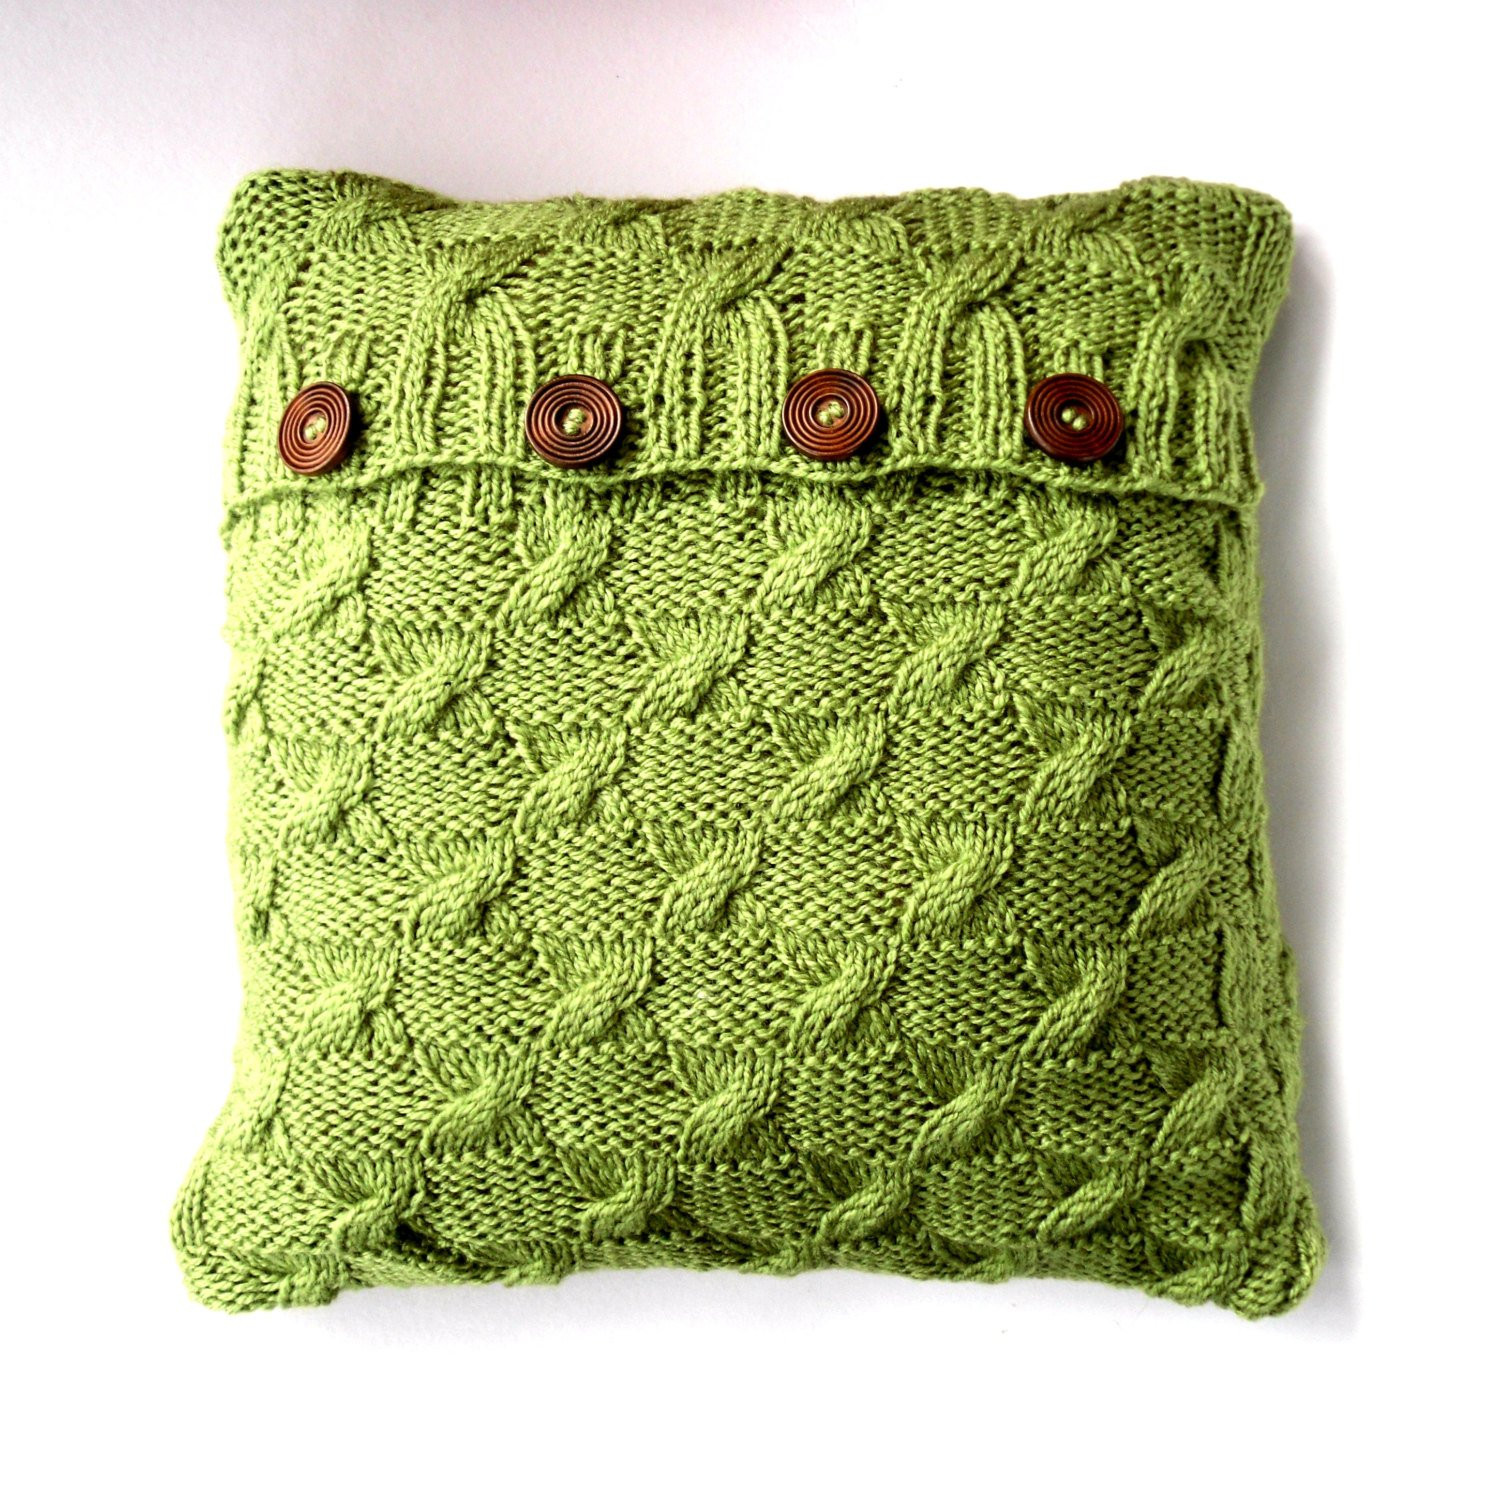 Knit Pillow Best Of Green Cable Knit Cushion Cover Throw Pillow by Of Charming 46 Pics Knit Pillow